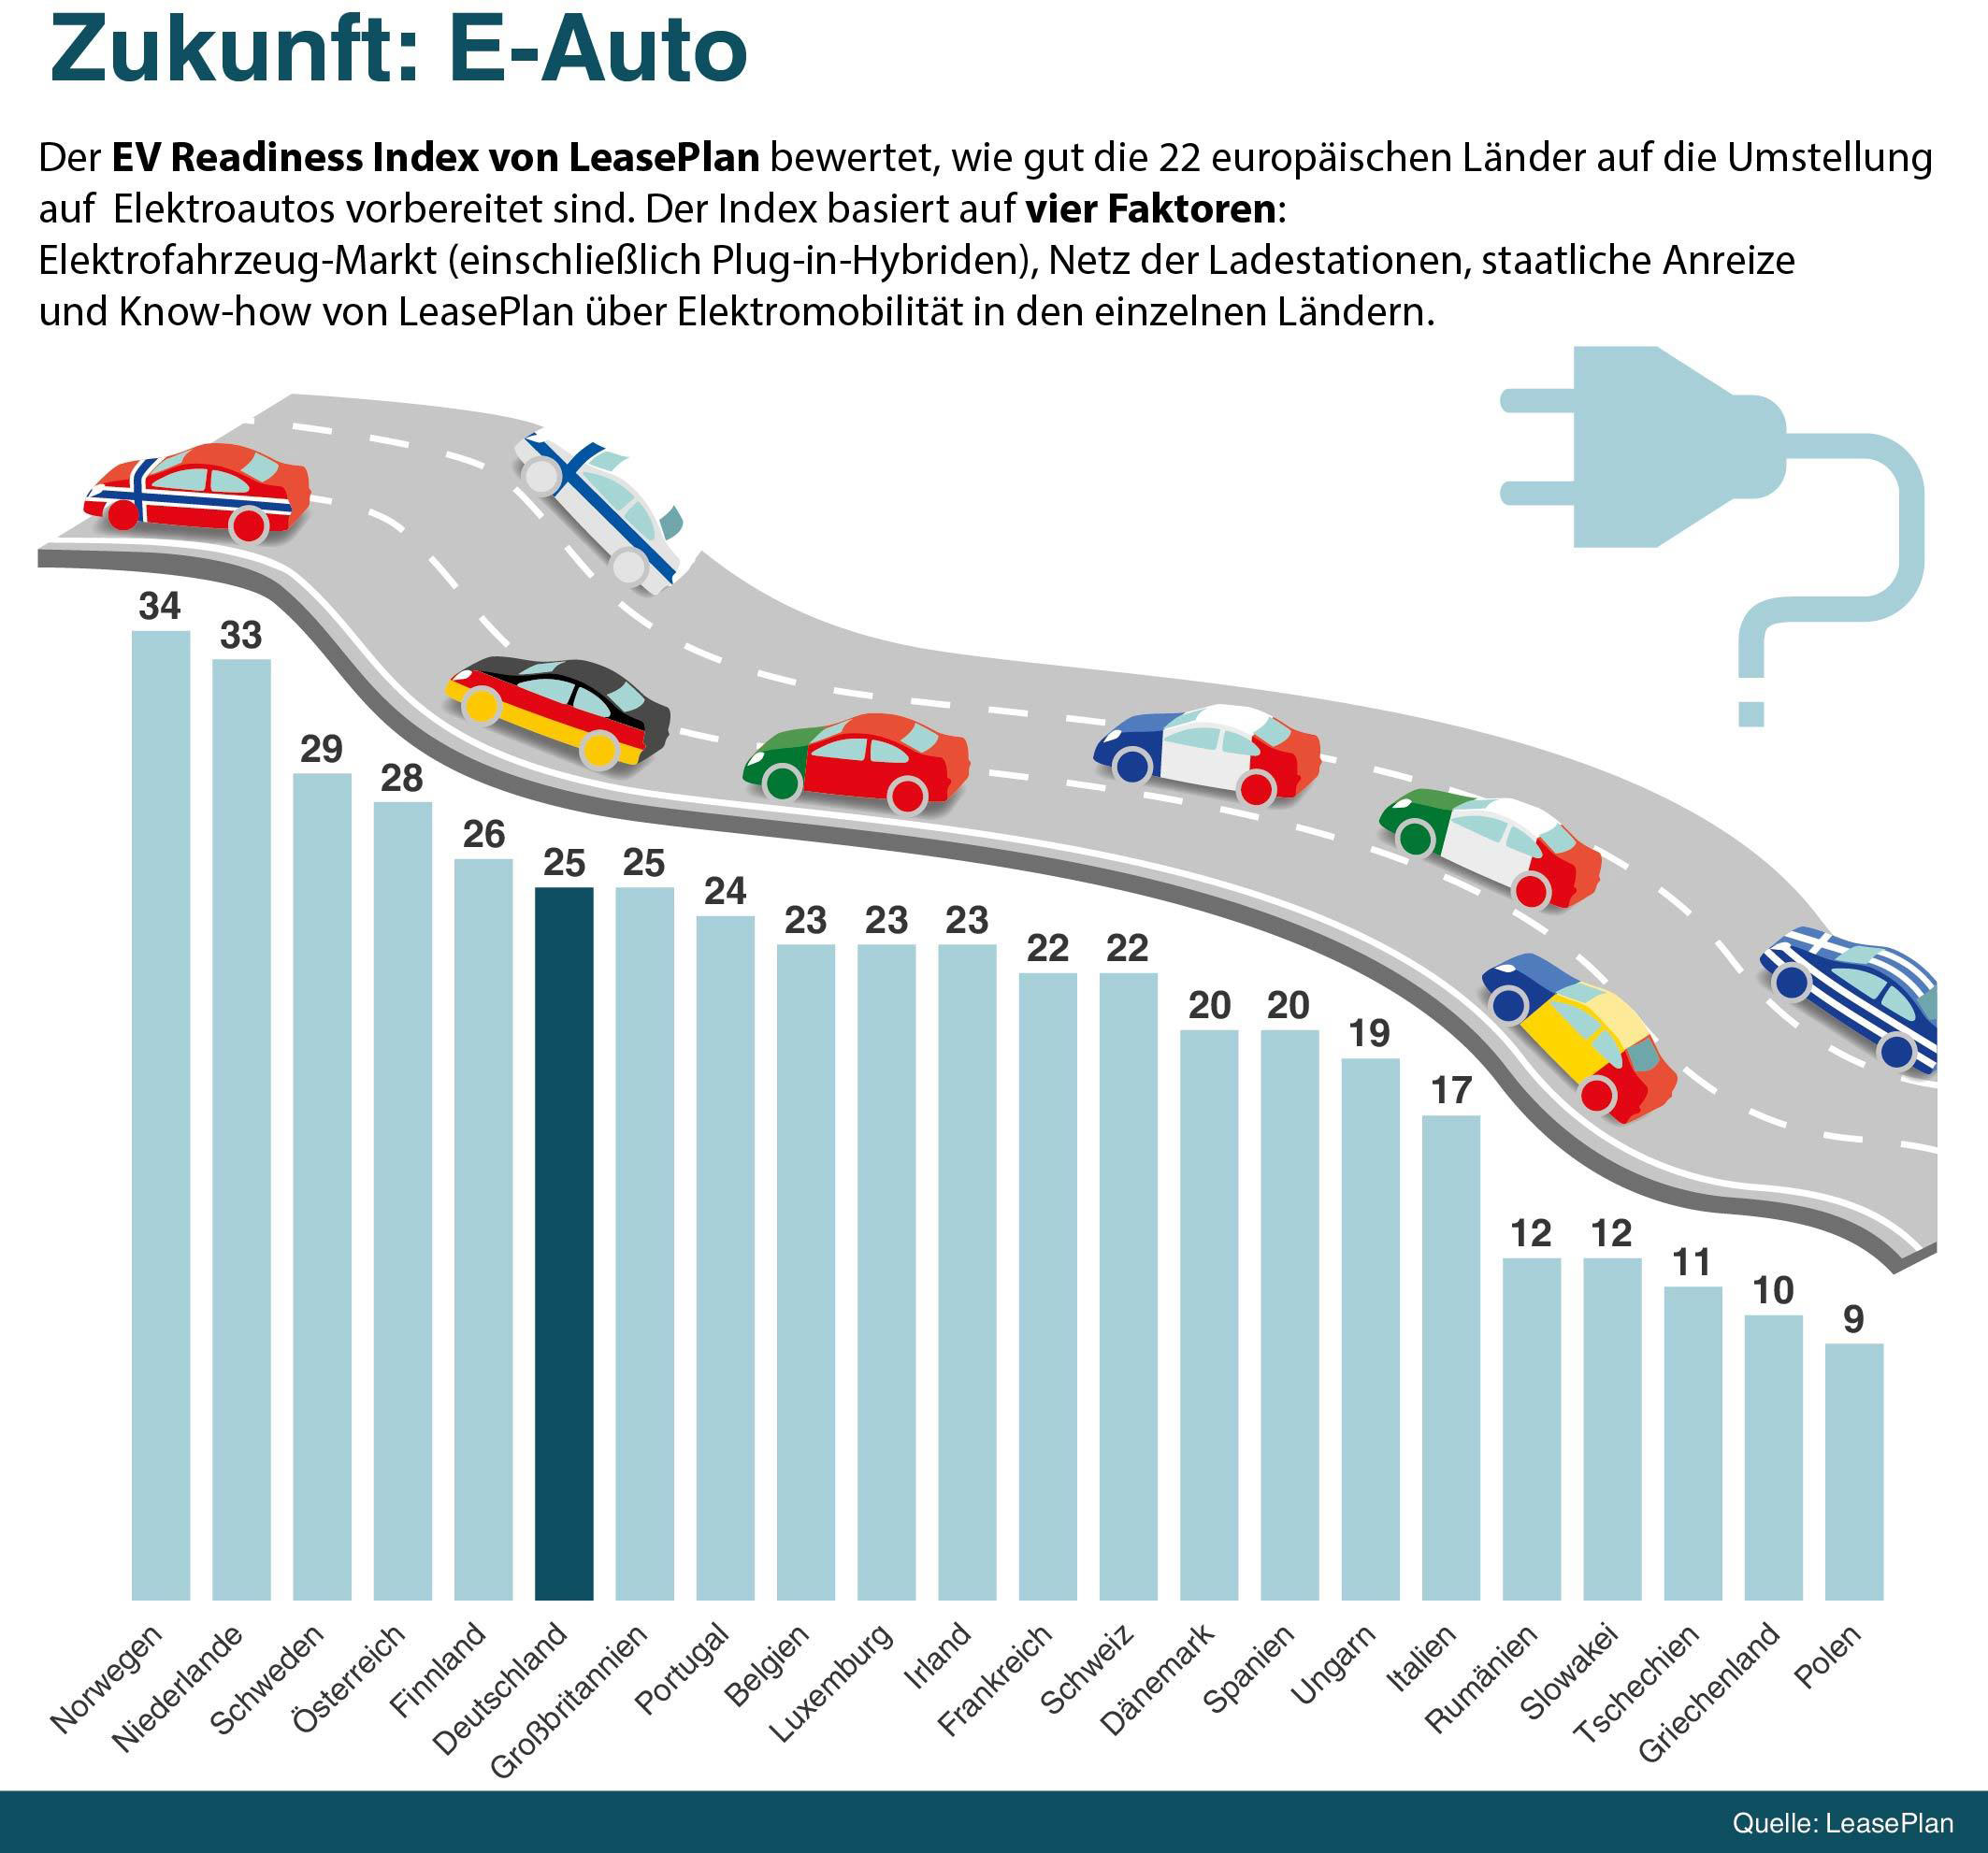 LeasePlan-EV-Readiness-Index-2019